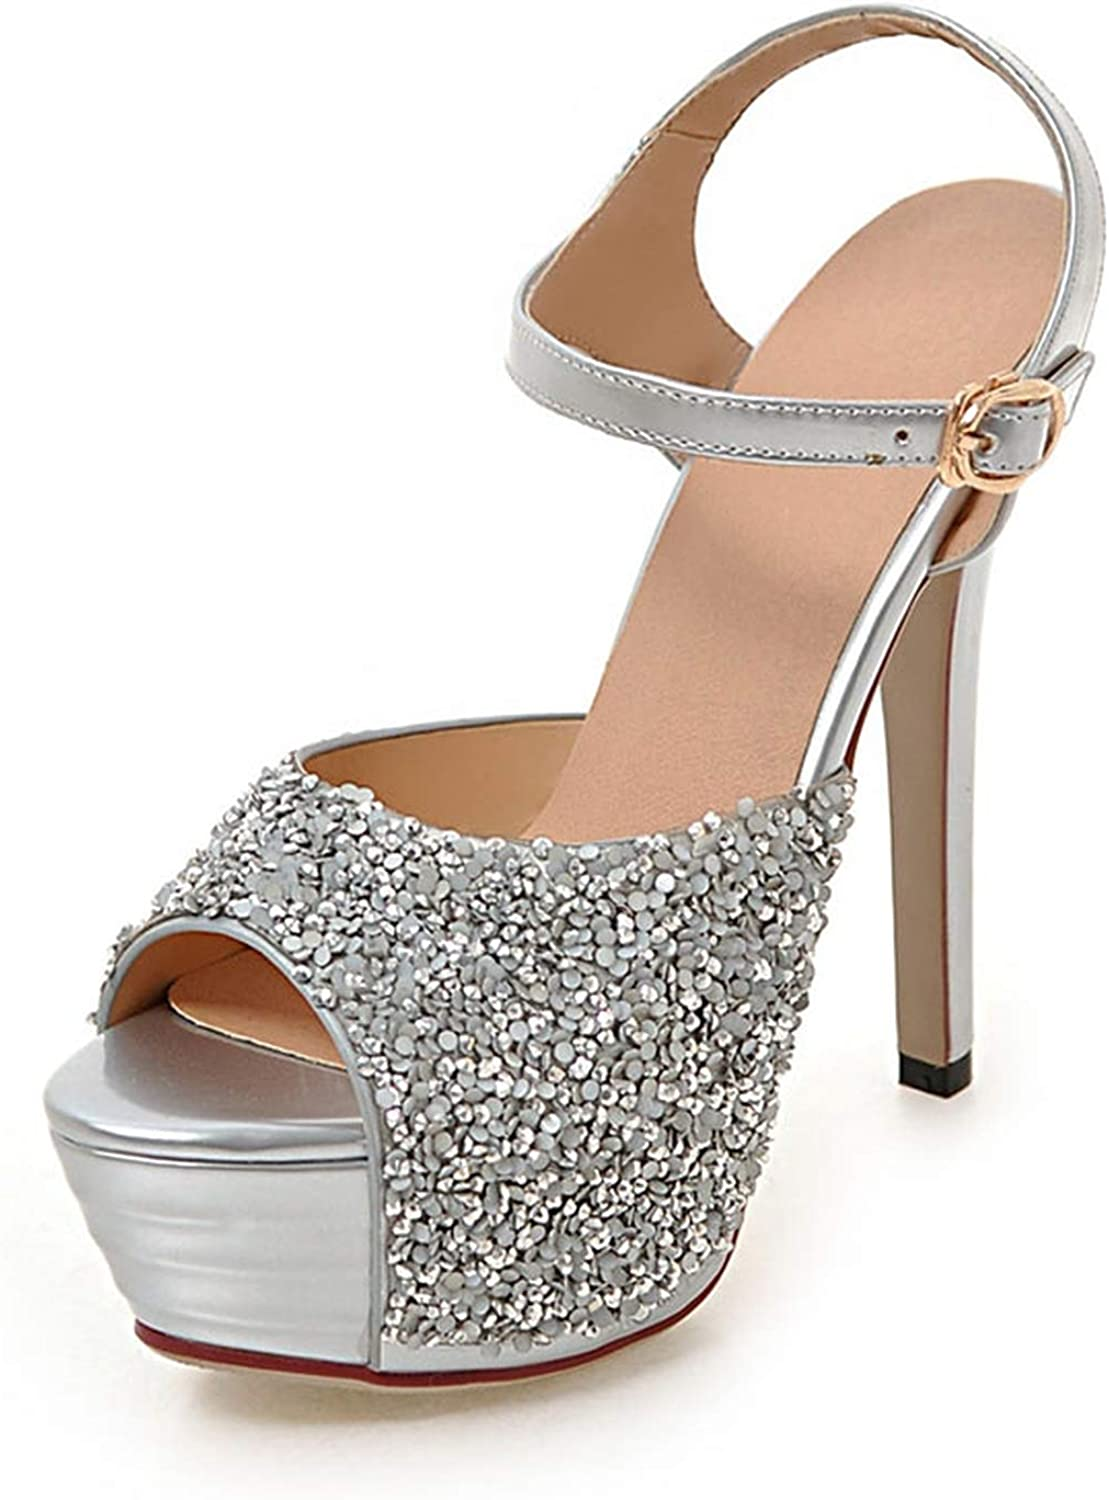 Prom Wedding shoes Lady Platforms Silver Glitter Rhinestone Bridal shoes Ankle Strap Sandals